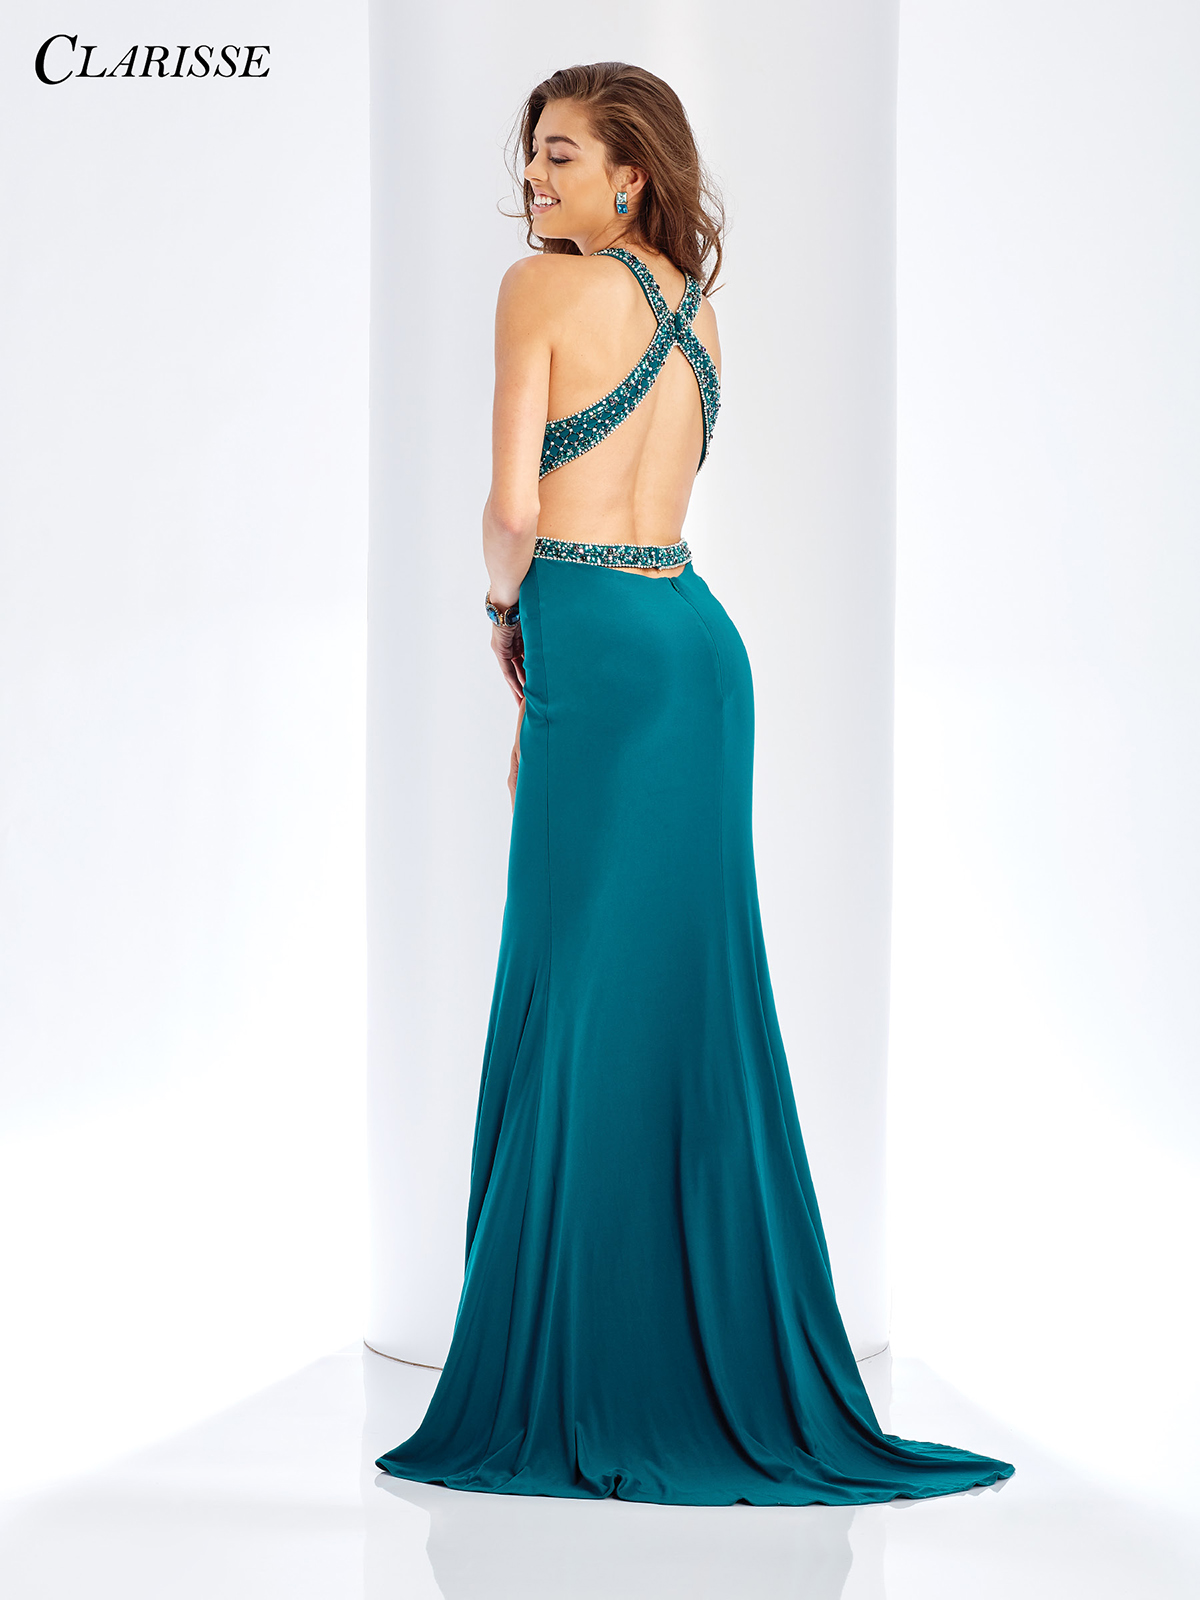 2018 Prom Dress Clarisse 3512 | Promgirl.net